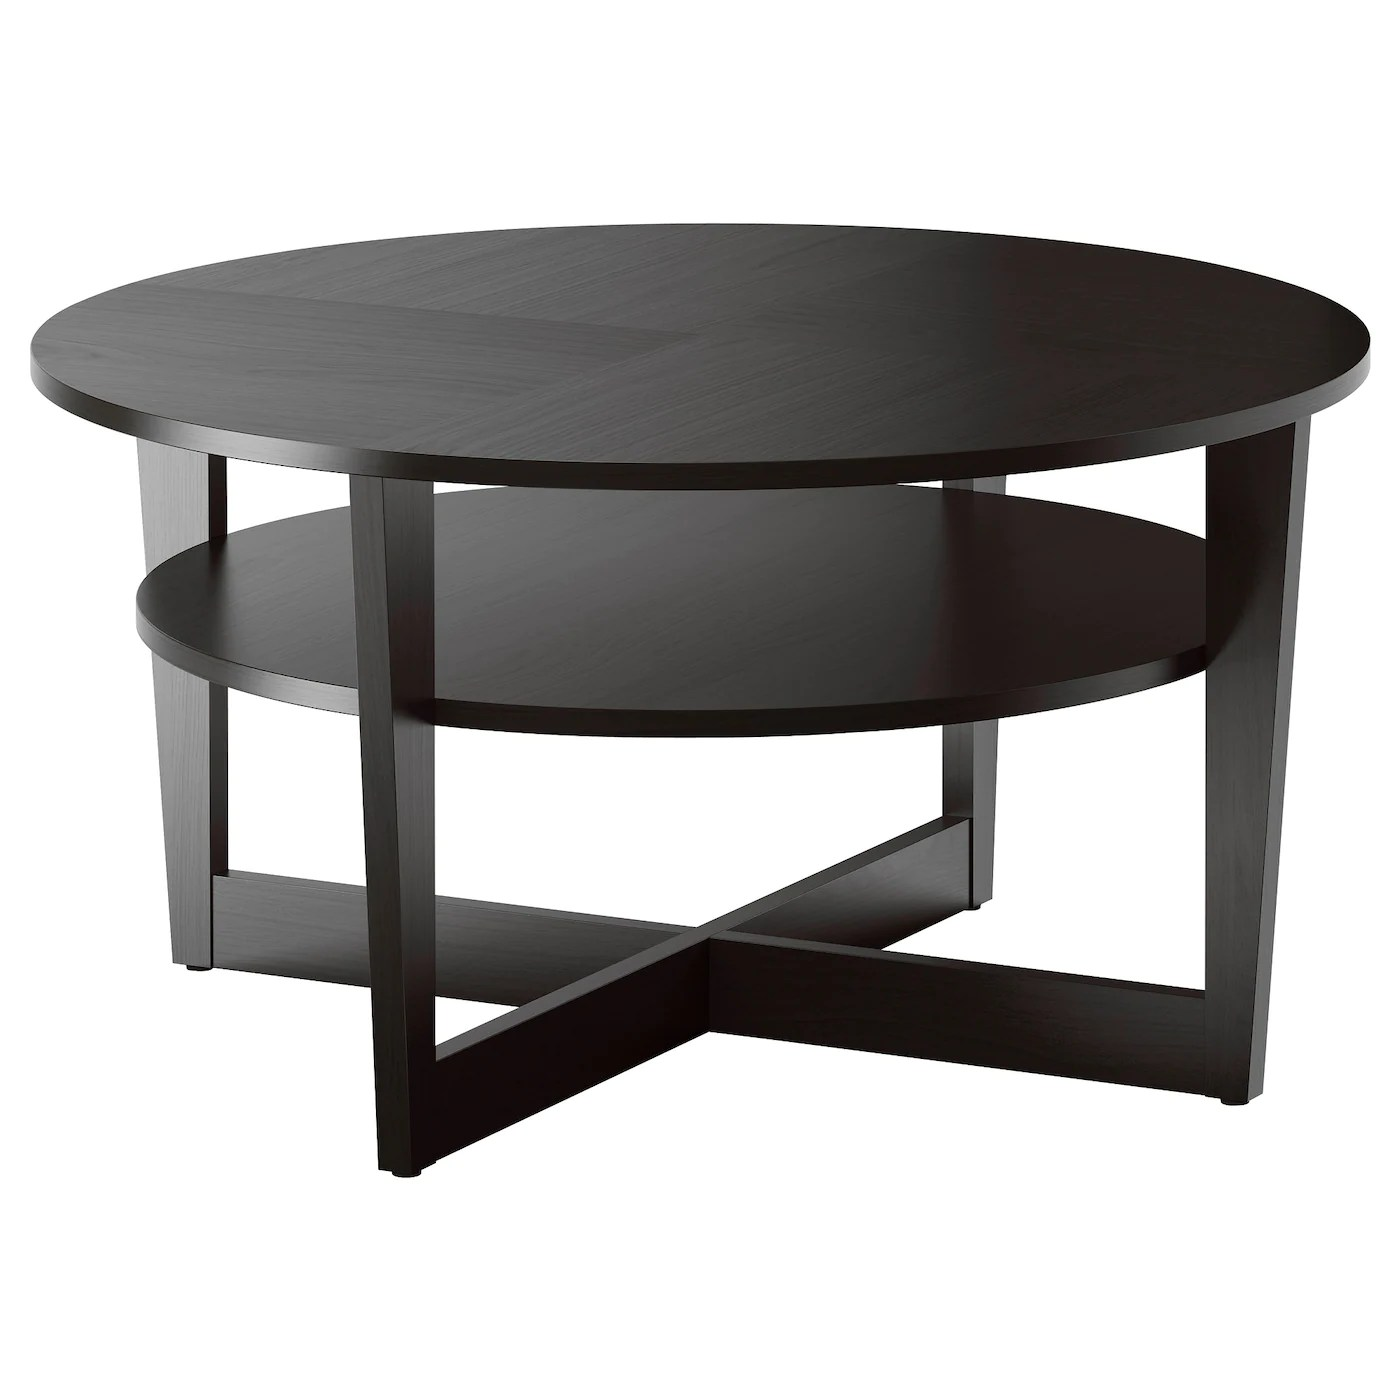 Ikea Stockholm Couchtisch Oval Coffee Tables Ikea